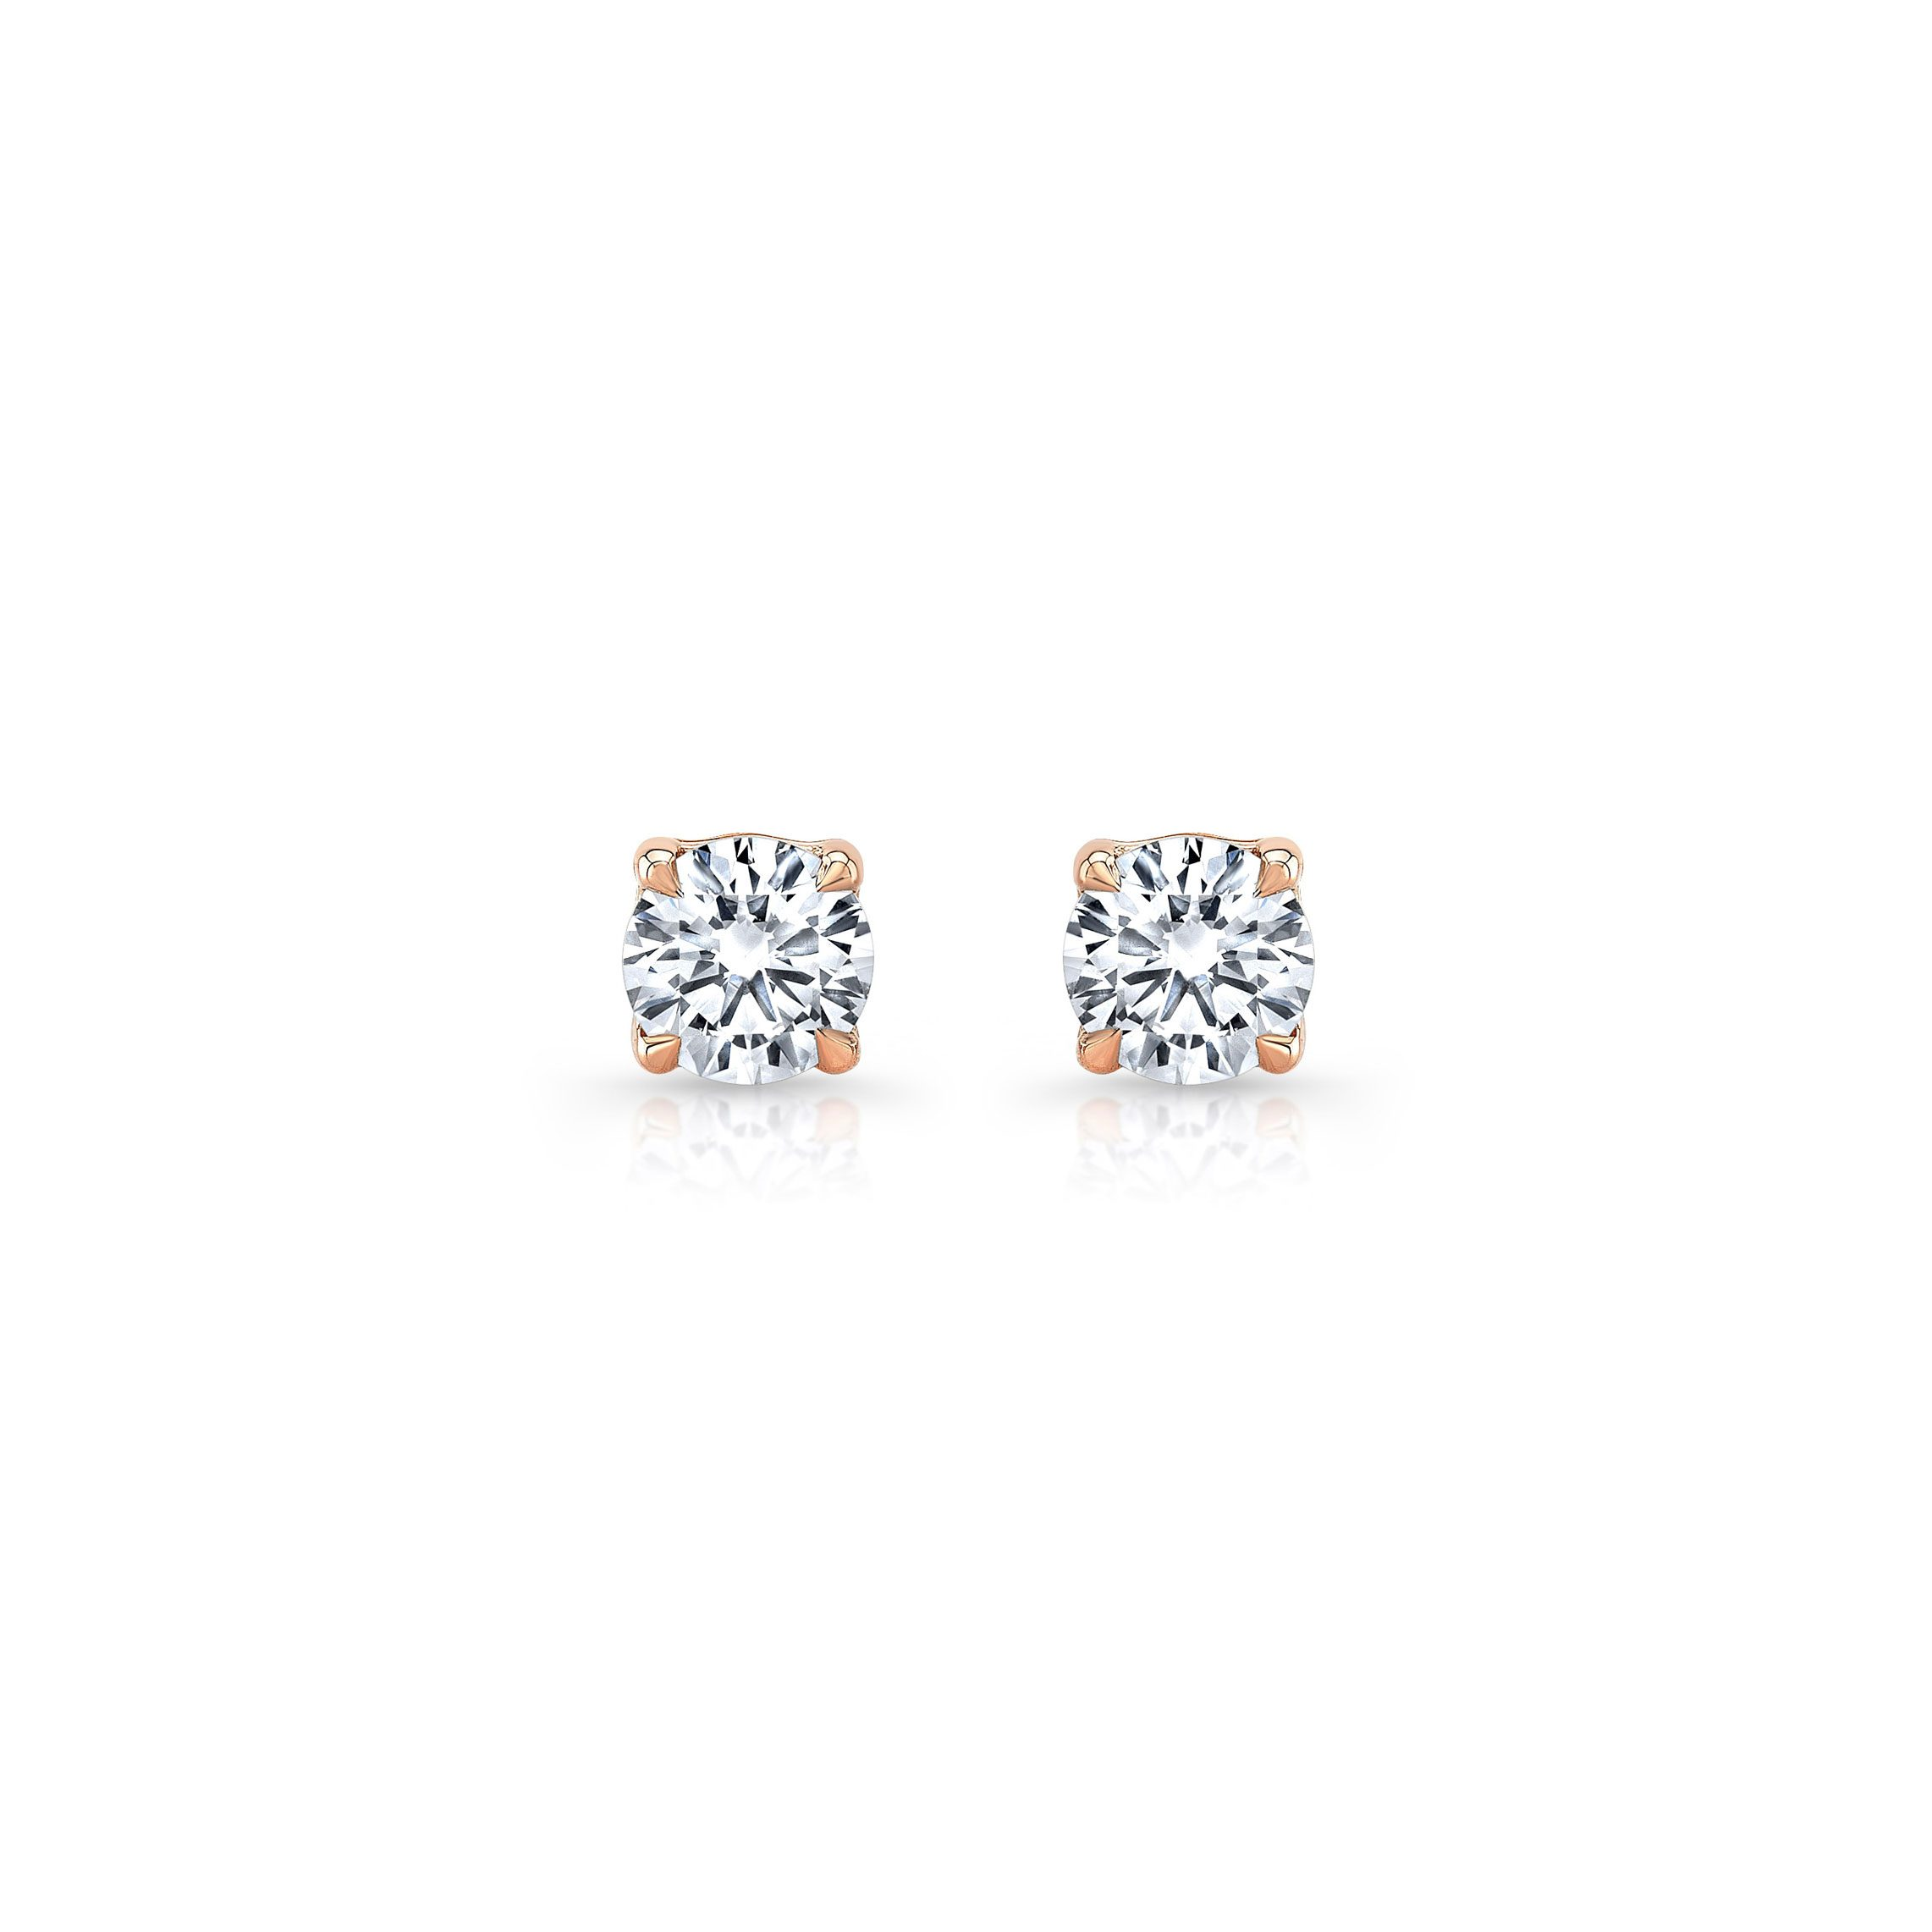 La Petite Round Brilliant Diamond Stud Earrings in 18k Rose Gold Front View by Oui by Jean Dousset